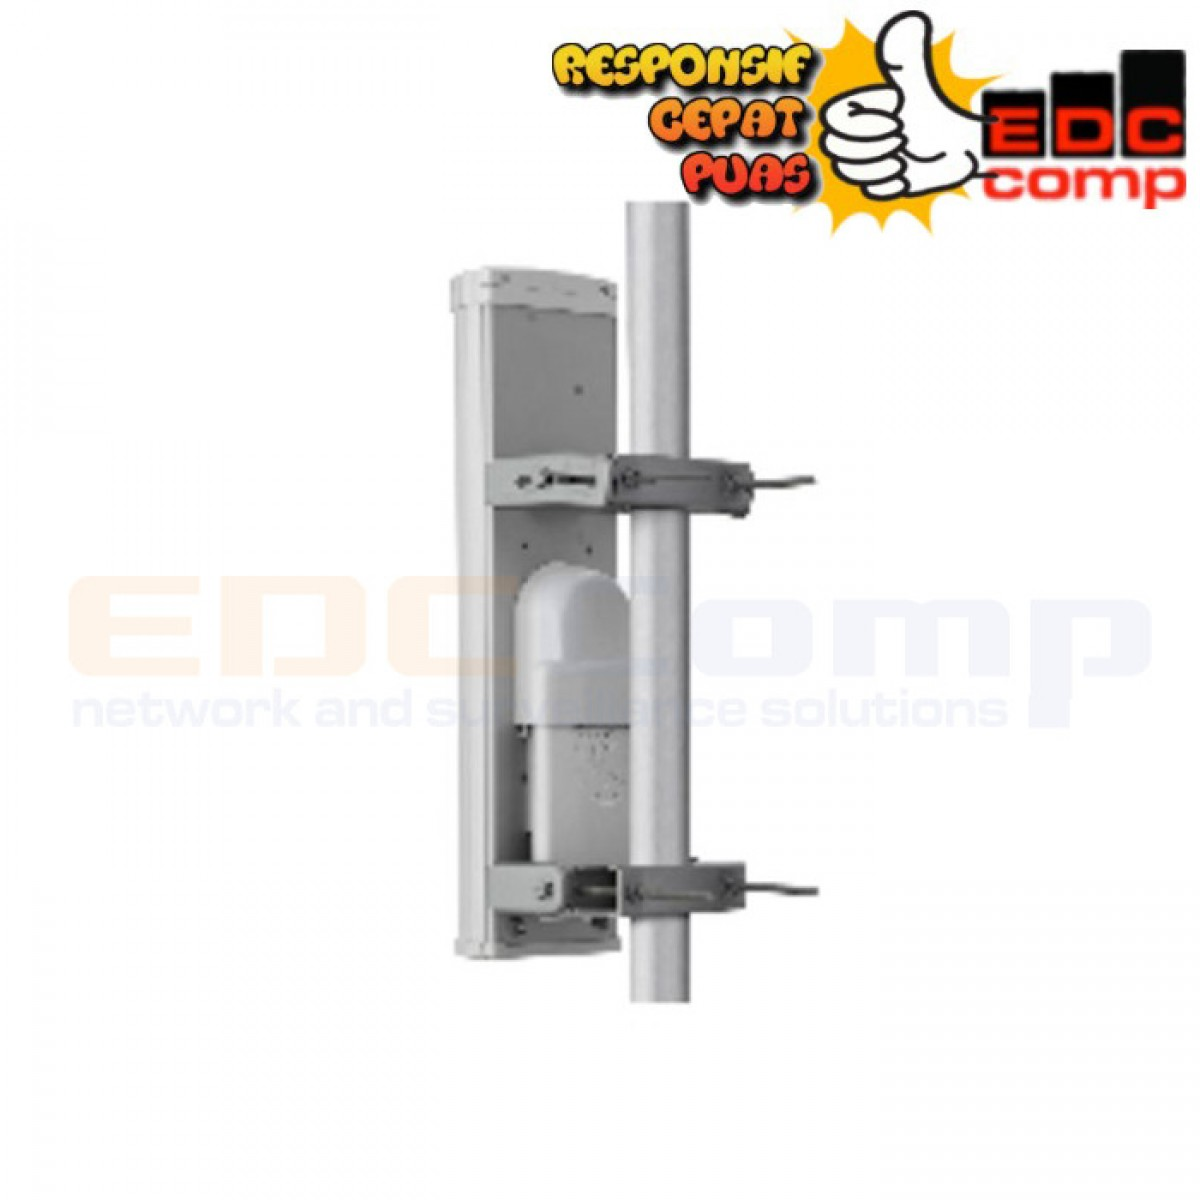 Cambium Networks ePMP Sectoral Antenna - EdcComp